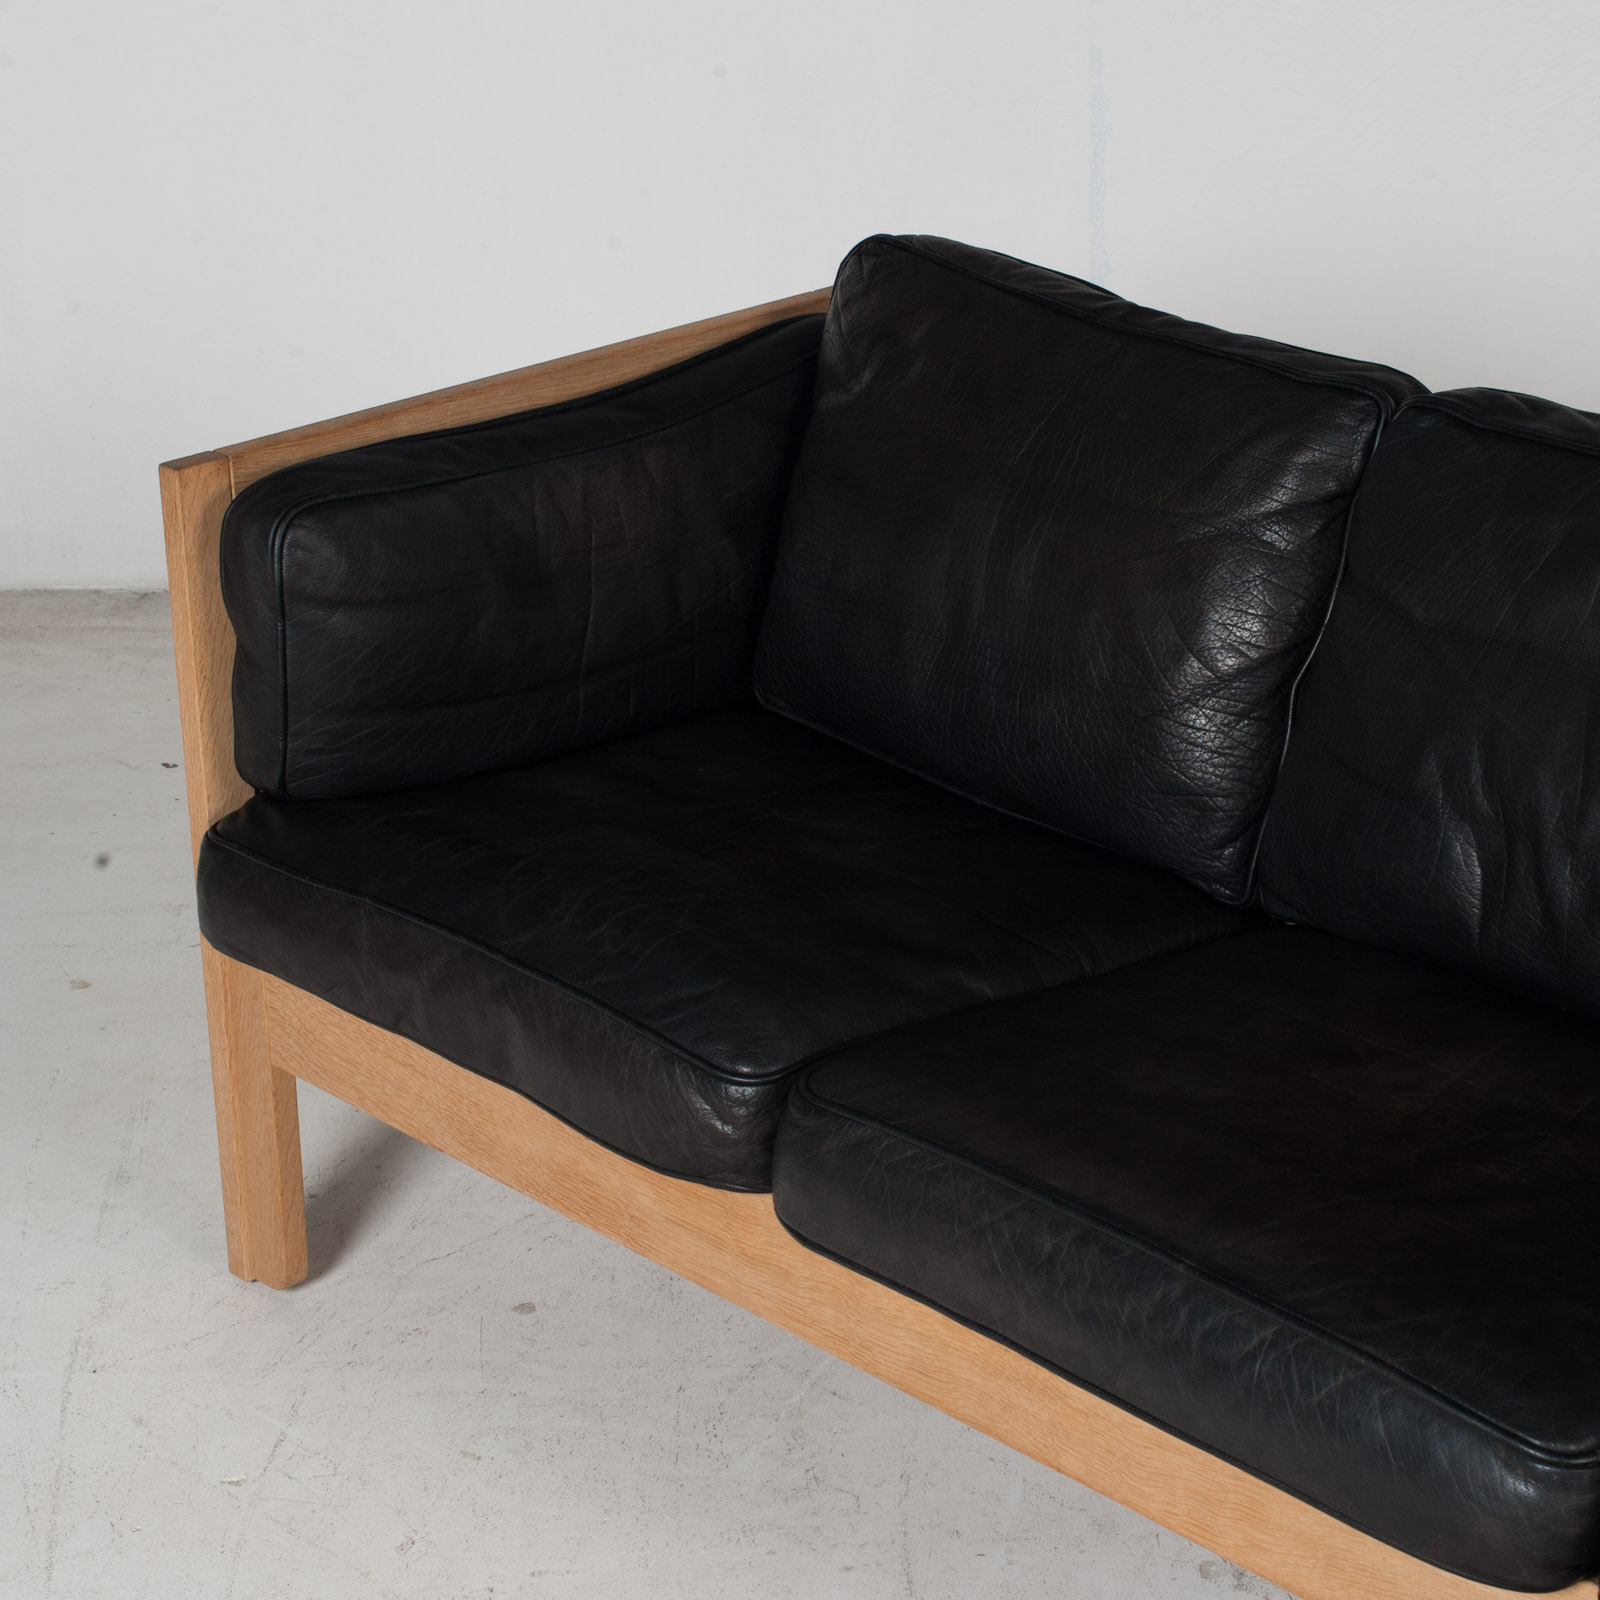 3 Seat Sofa By Borge Mogensen For Frederica In Black Leather And Oak, 1960s, Denmark 5